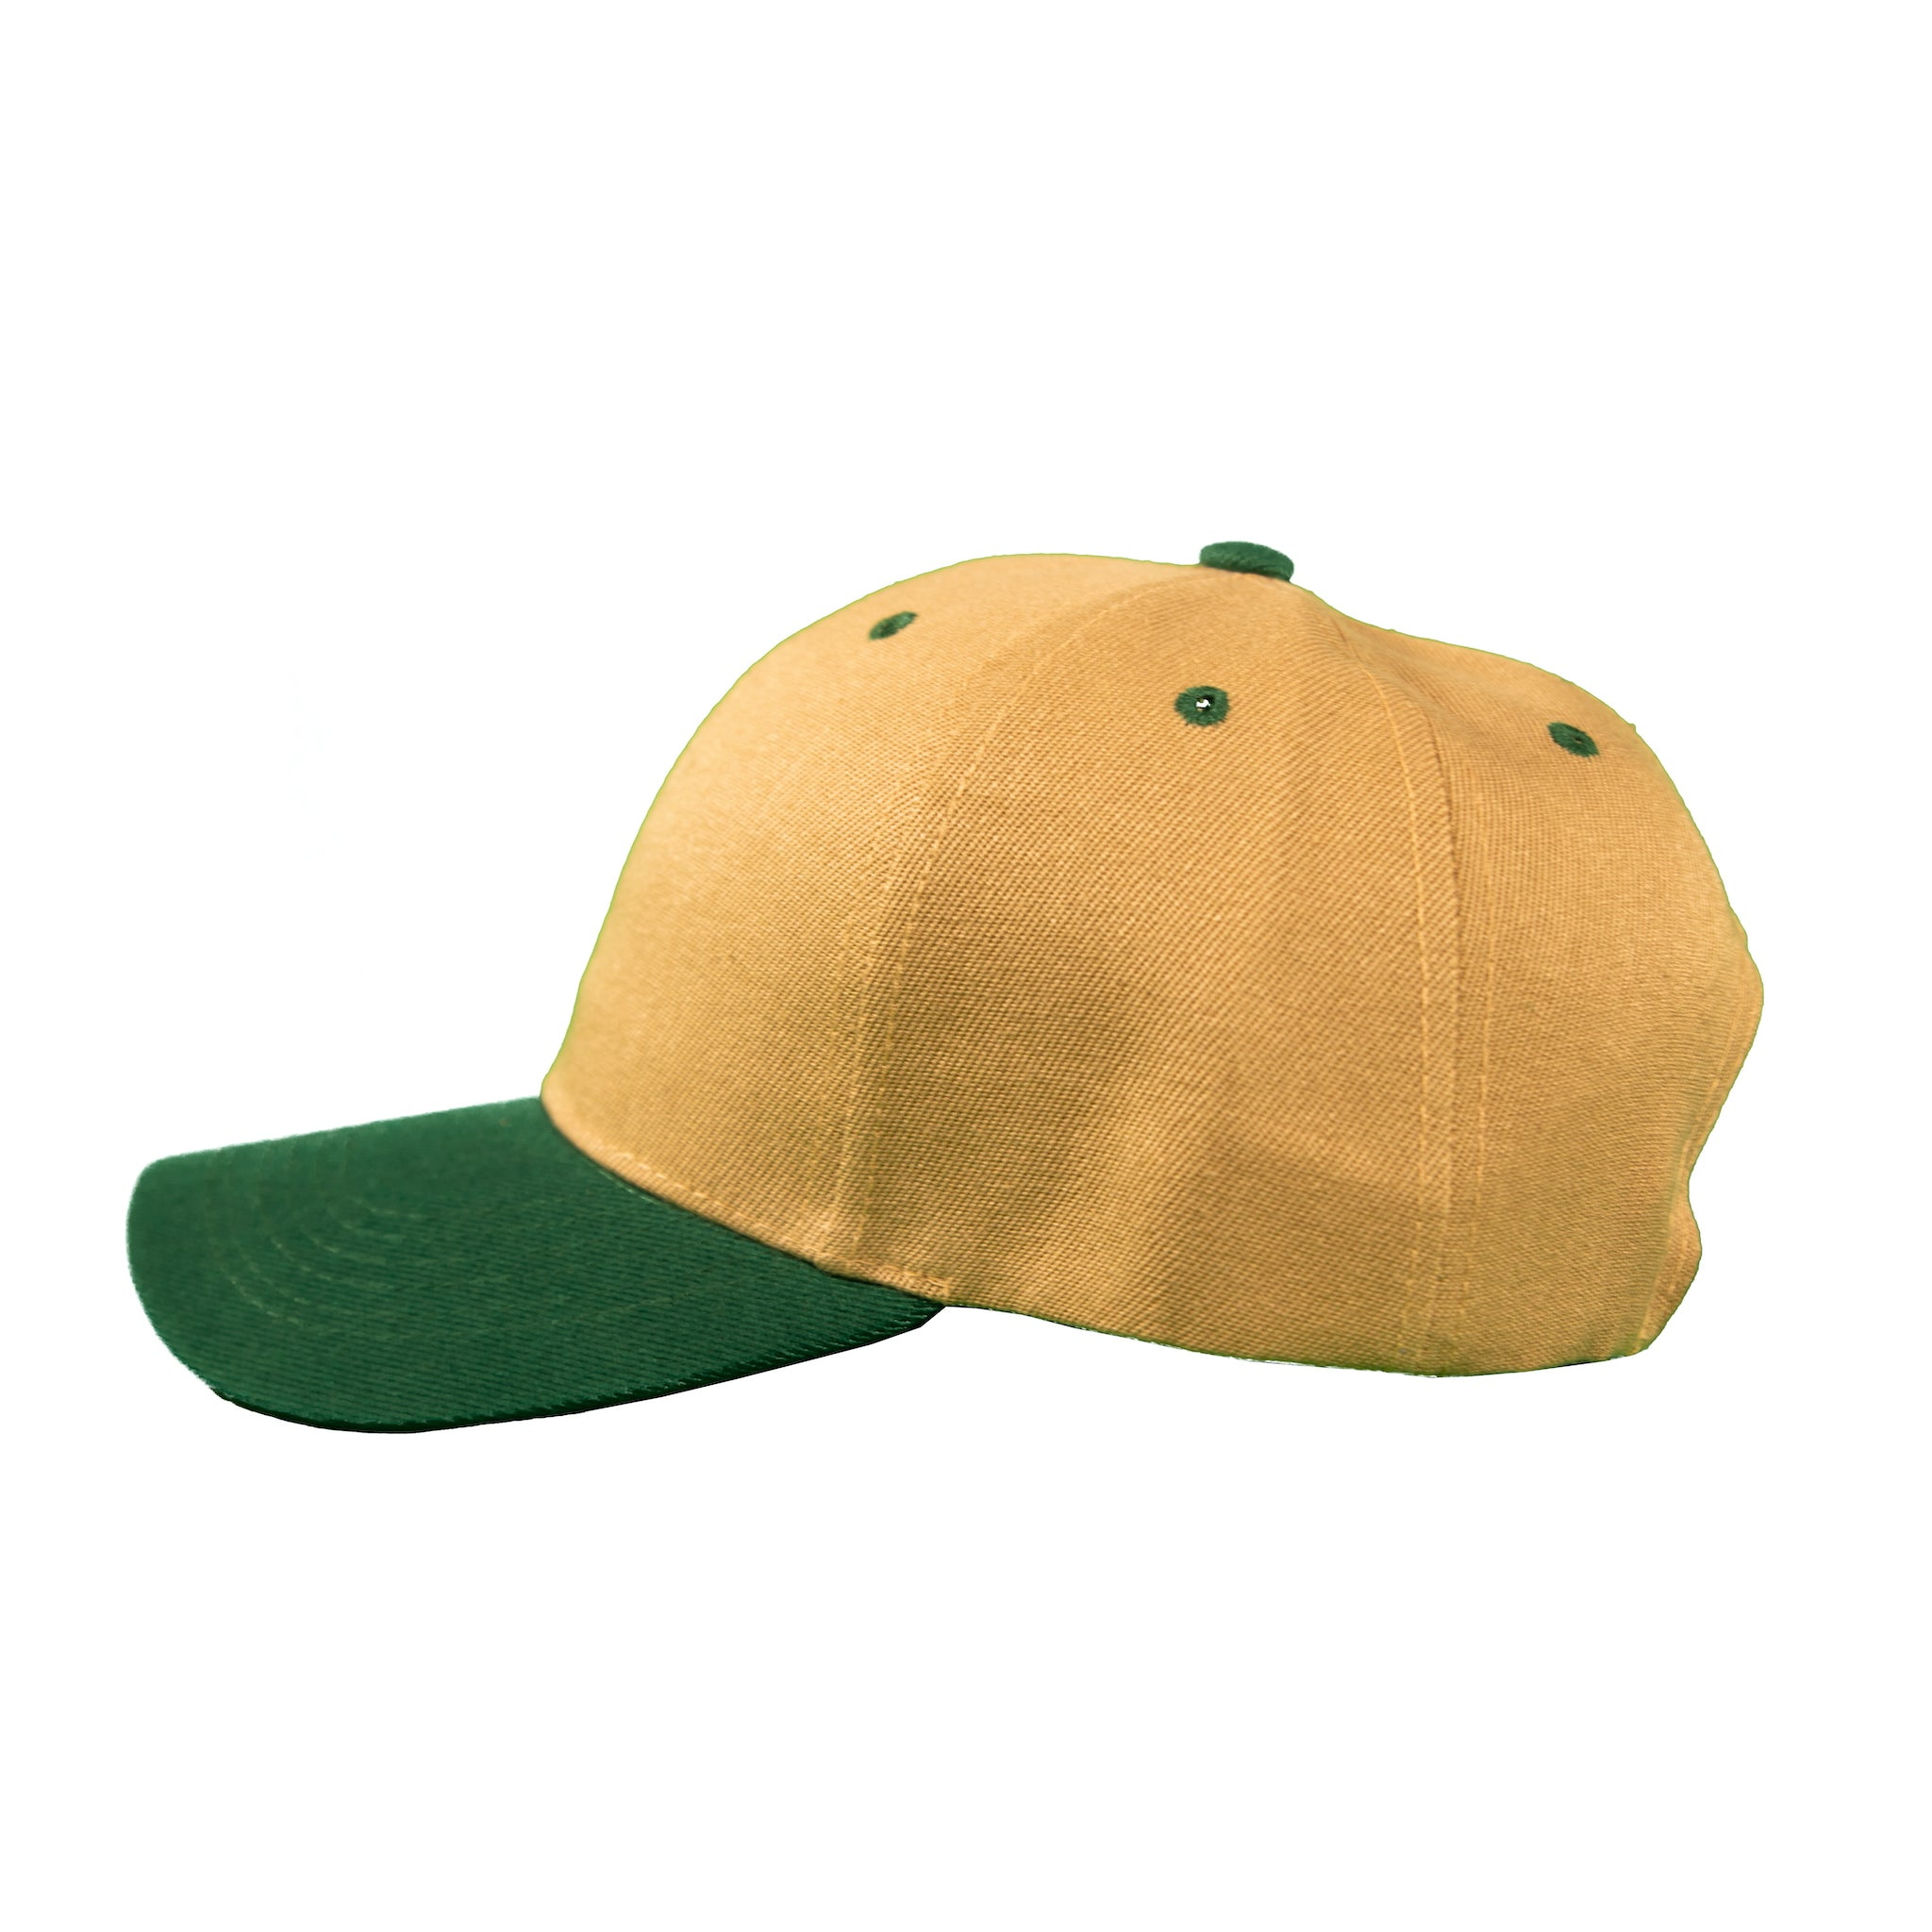 Basic Two-Tone Velcro Back in Tan And Green